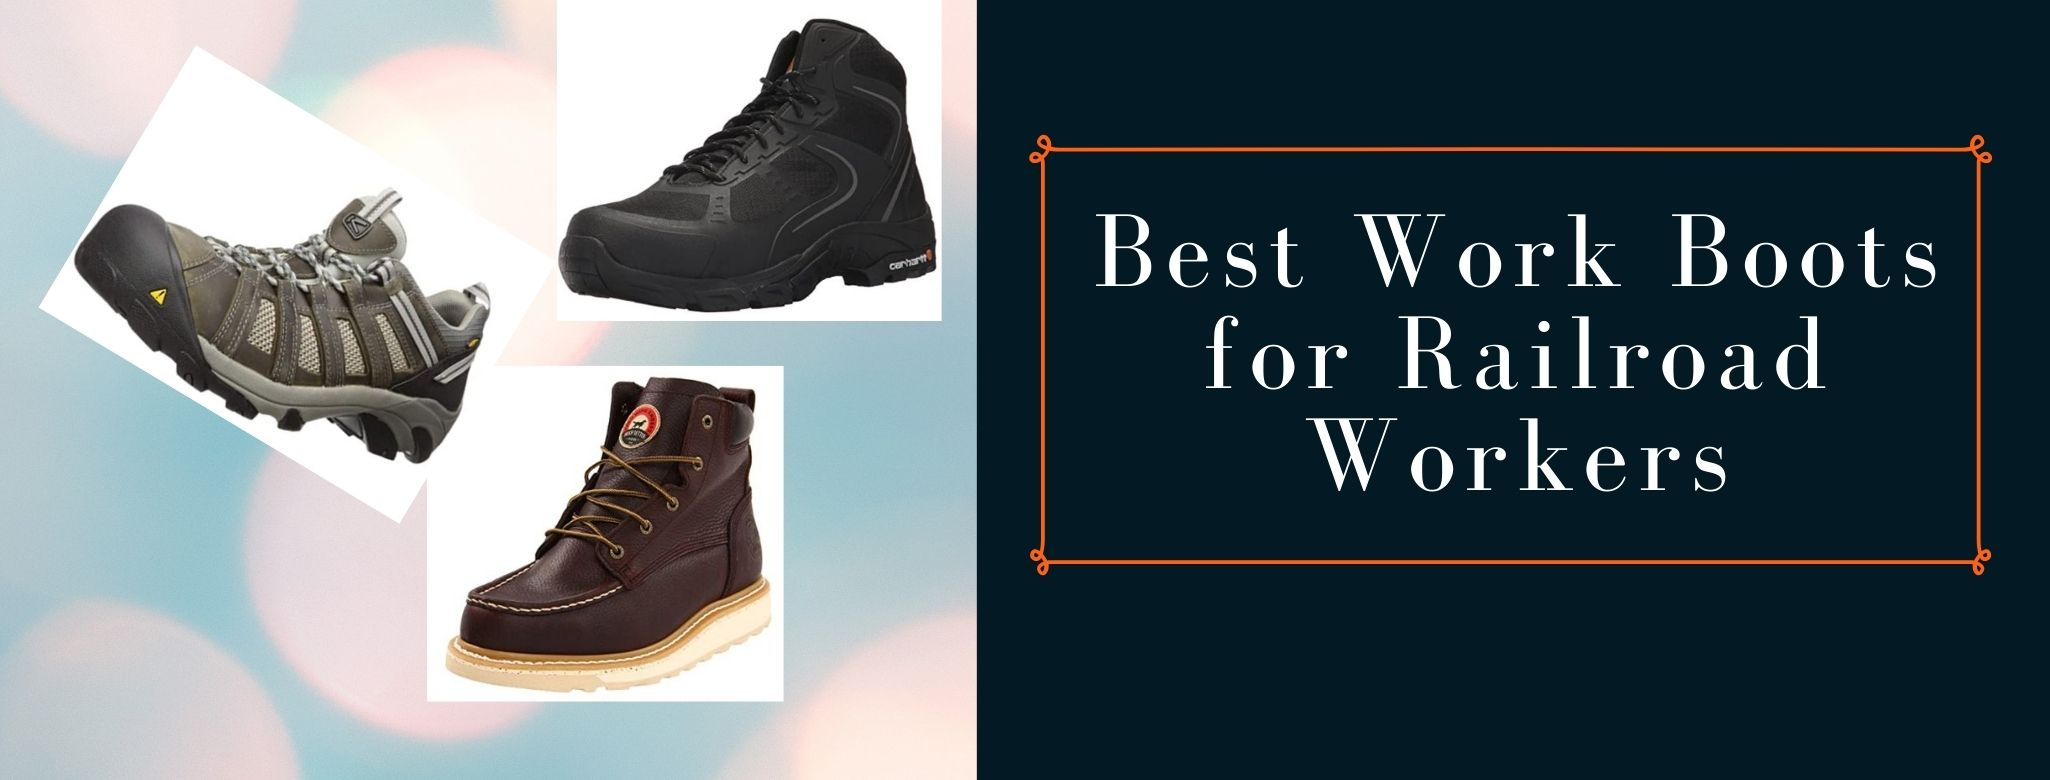 Top-rated work boots for rough and tough work